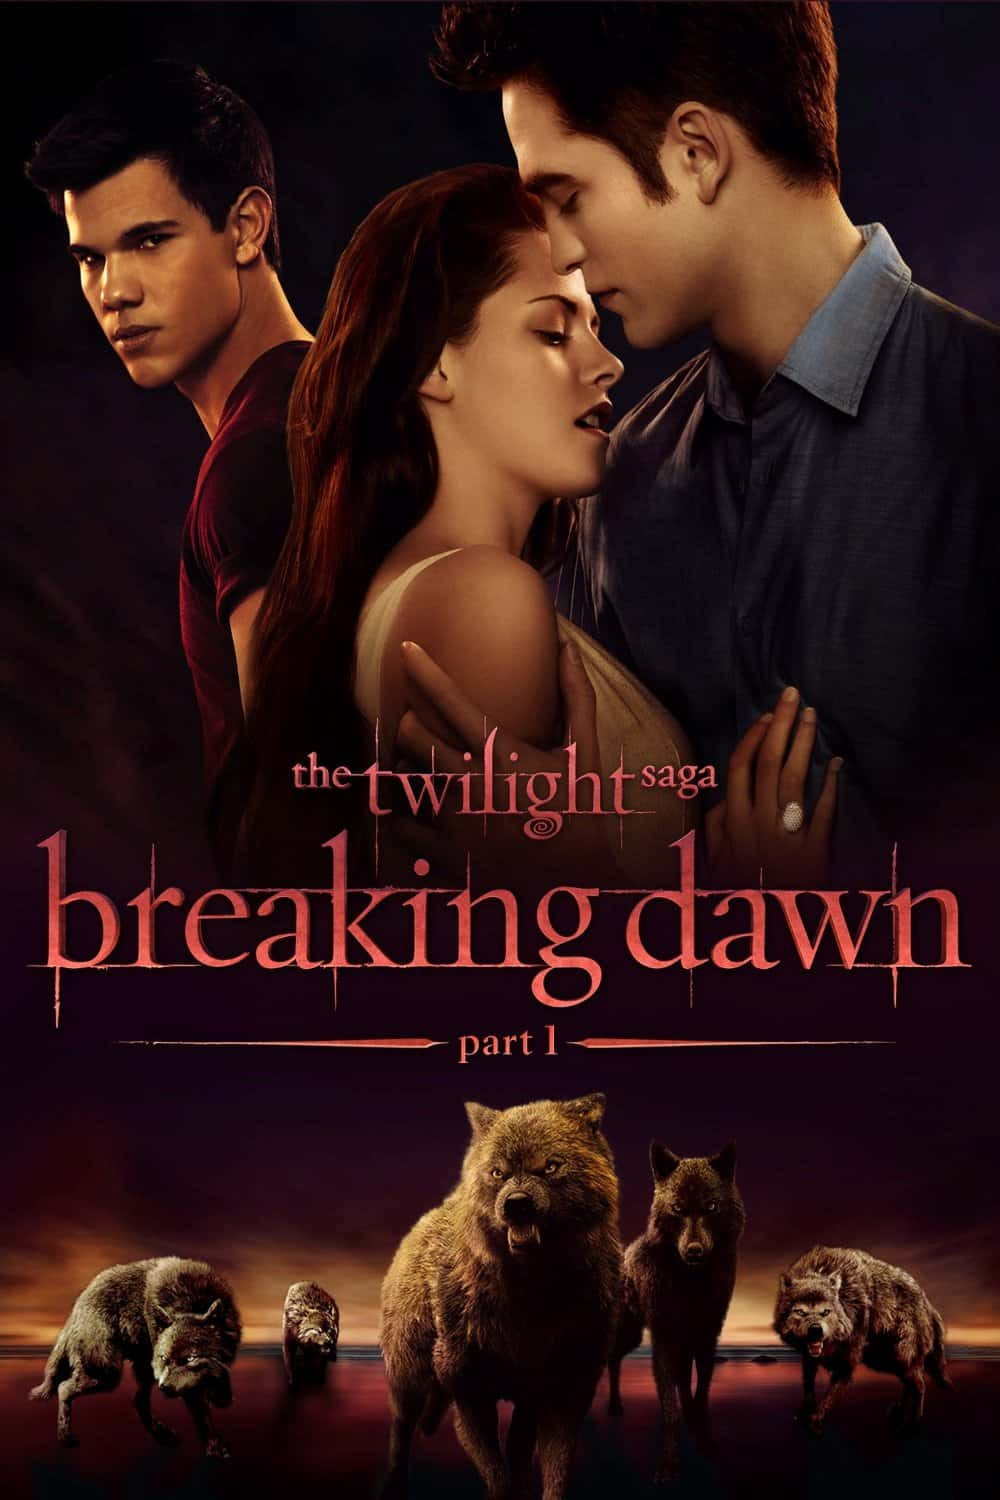 The Twilight Saga: Breaking Dawn – Part 1, 2011